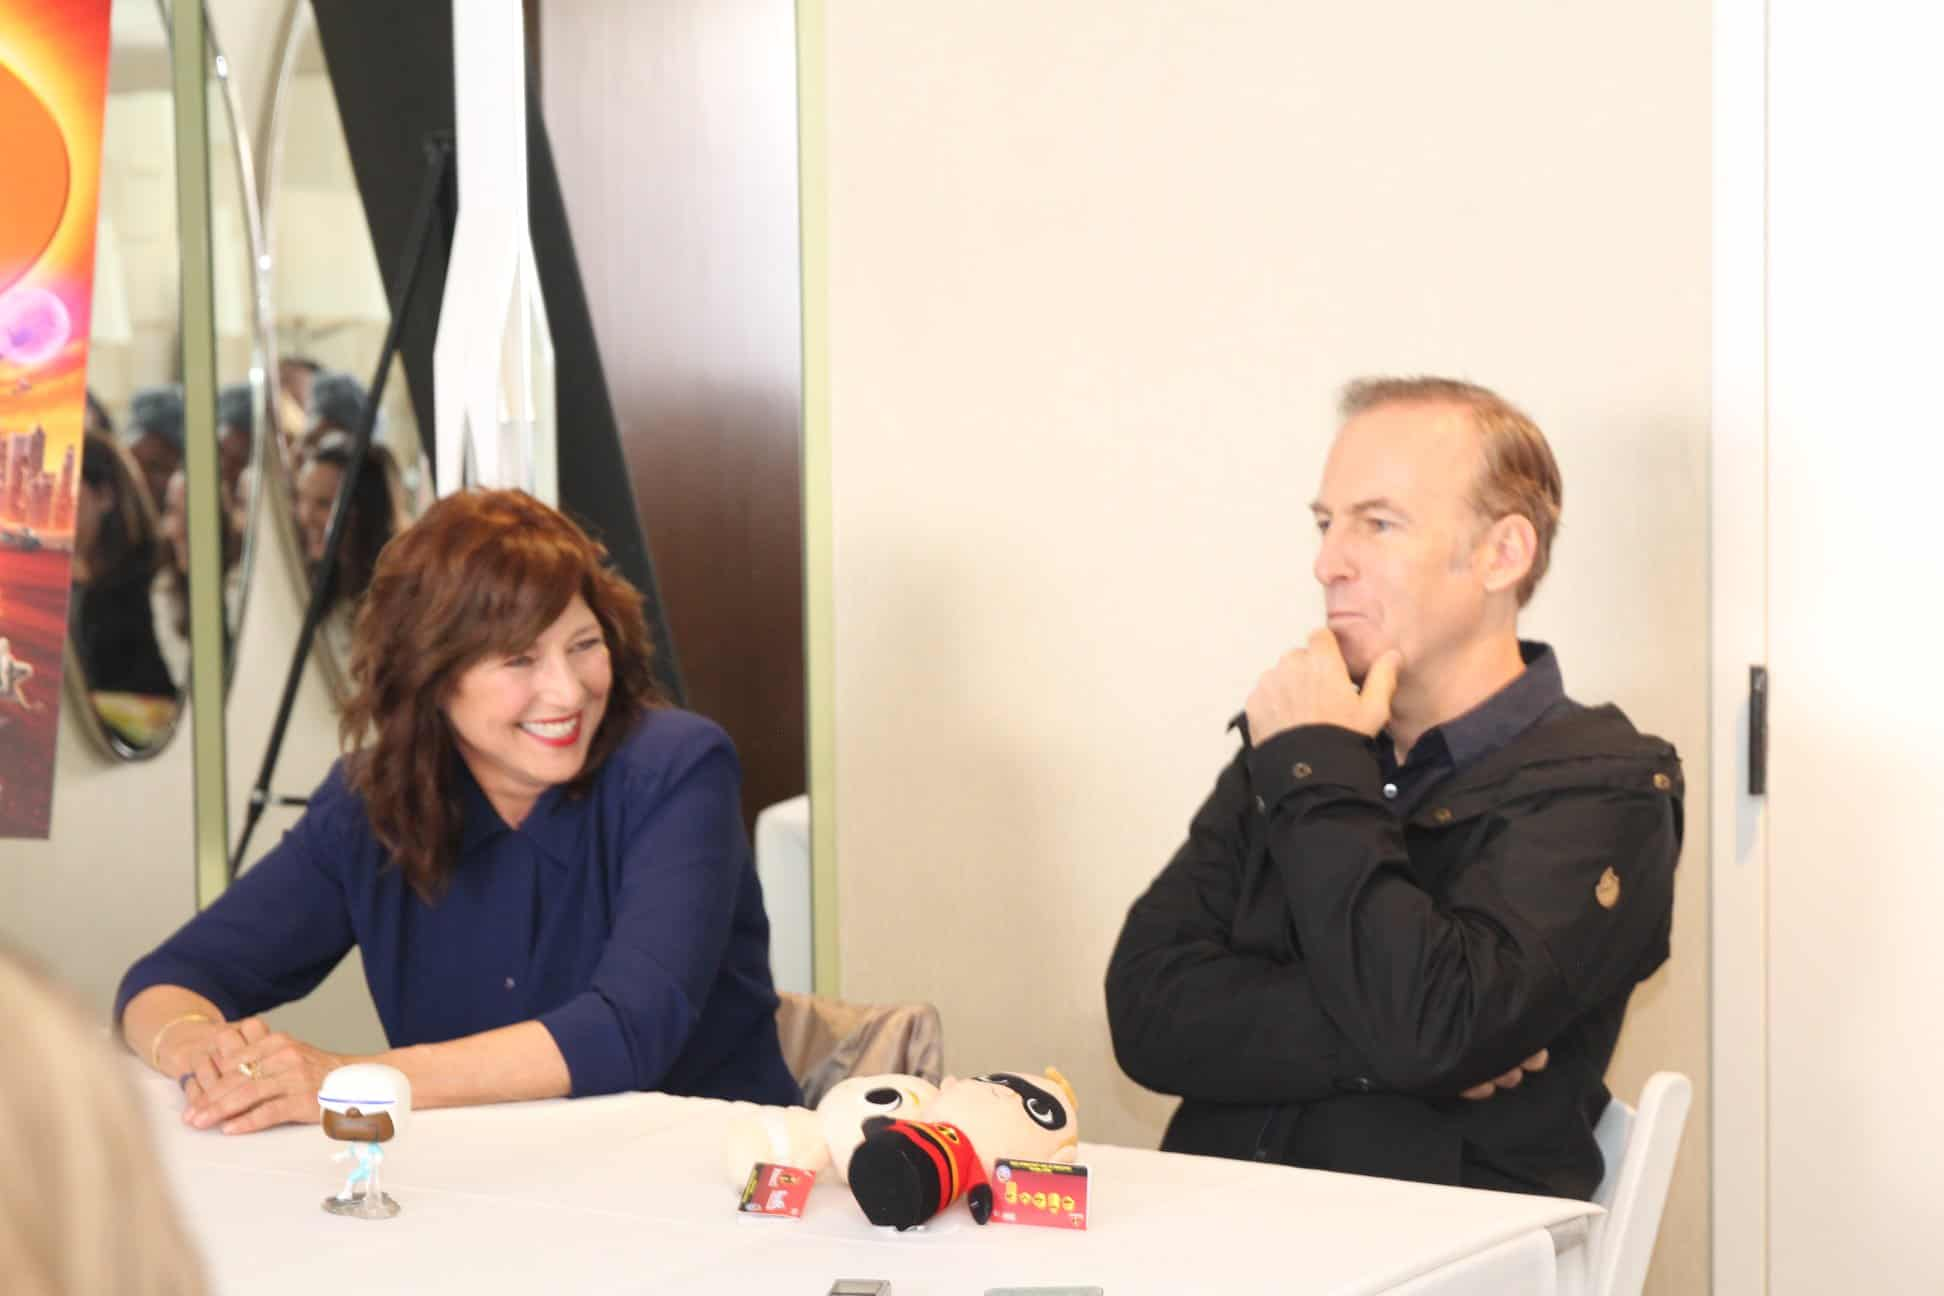 Interviewing Bob Odenkirk and Catherine Keener